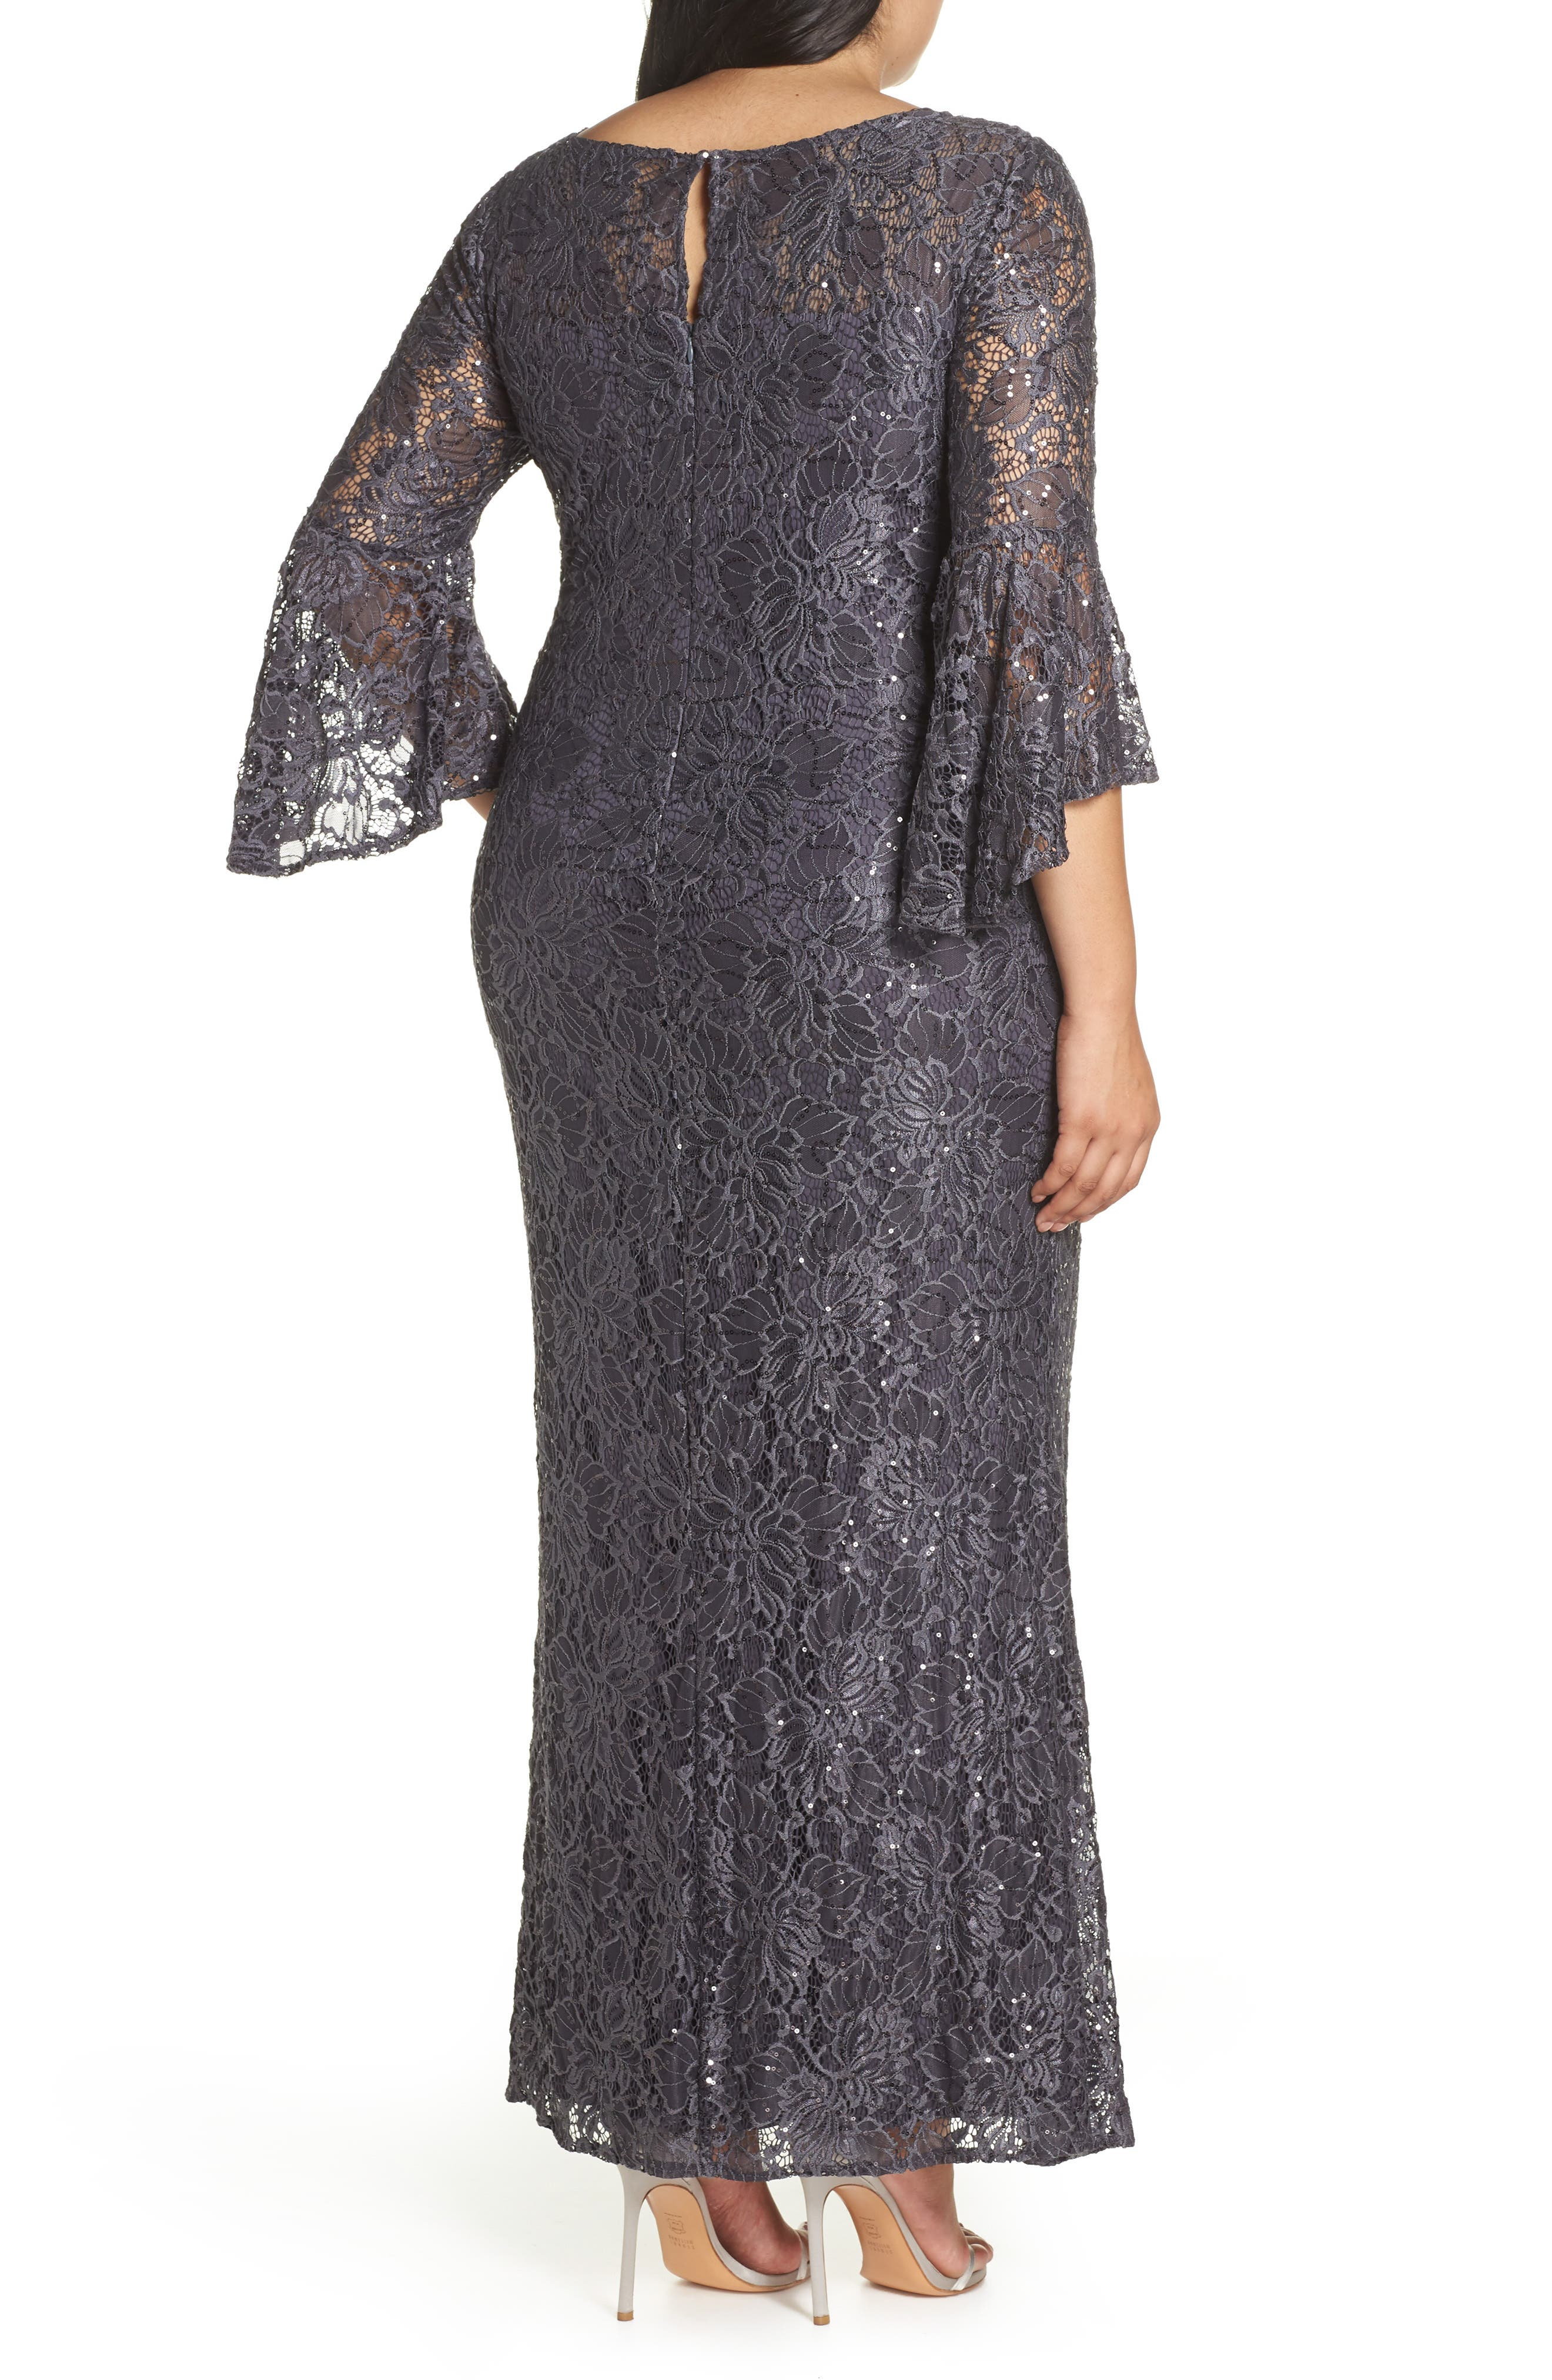 MORGAN & CO., Lace Bell Sleeve Gown, Alternate thumbnail 2, color, CHARCOAL